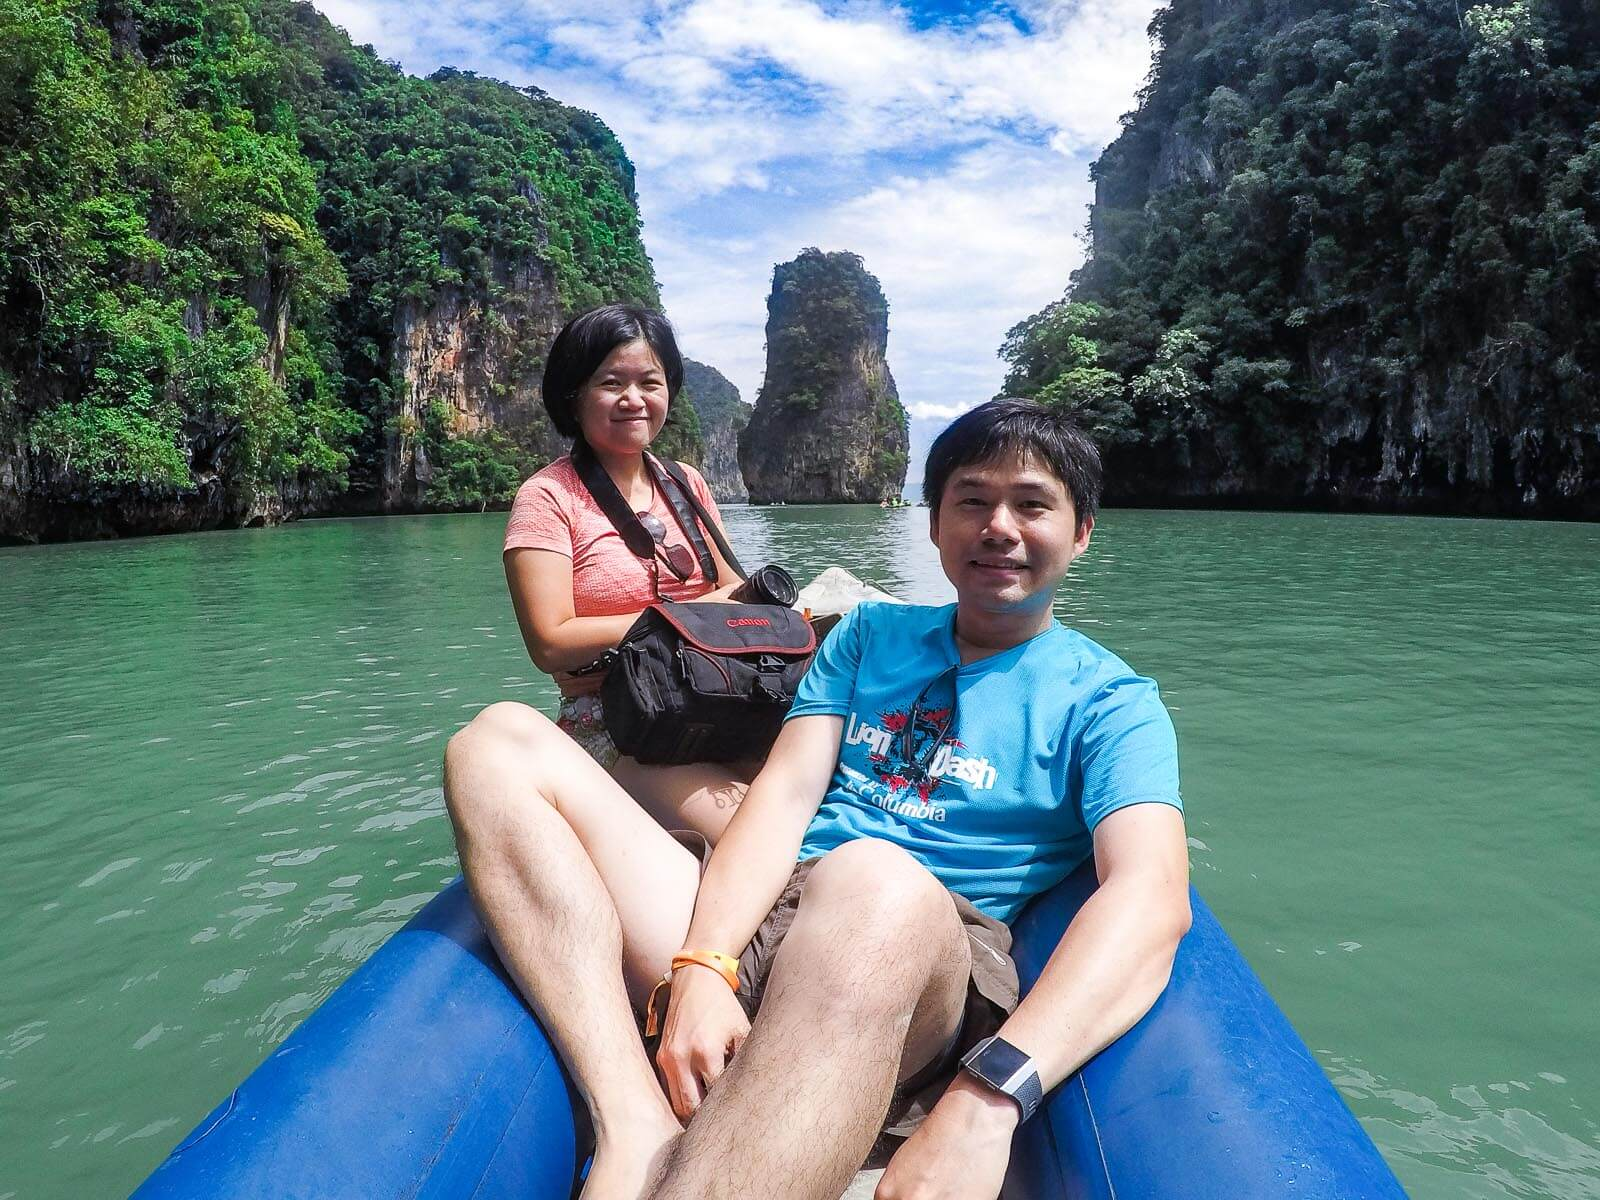 James Bond Island and Phang Nga Bay Tour from Phuket